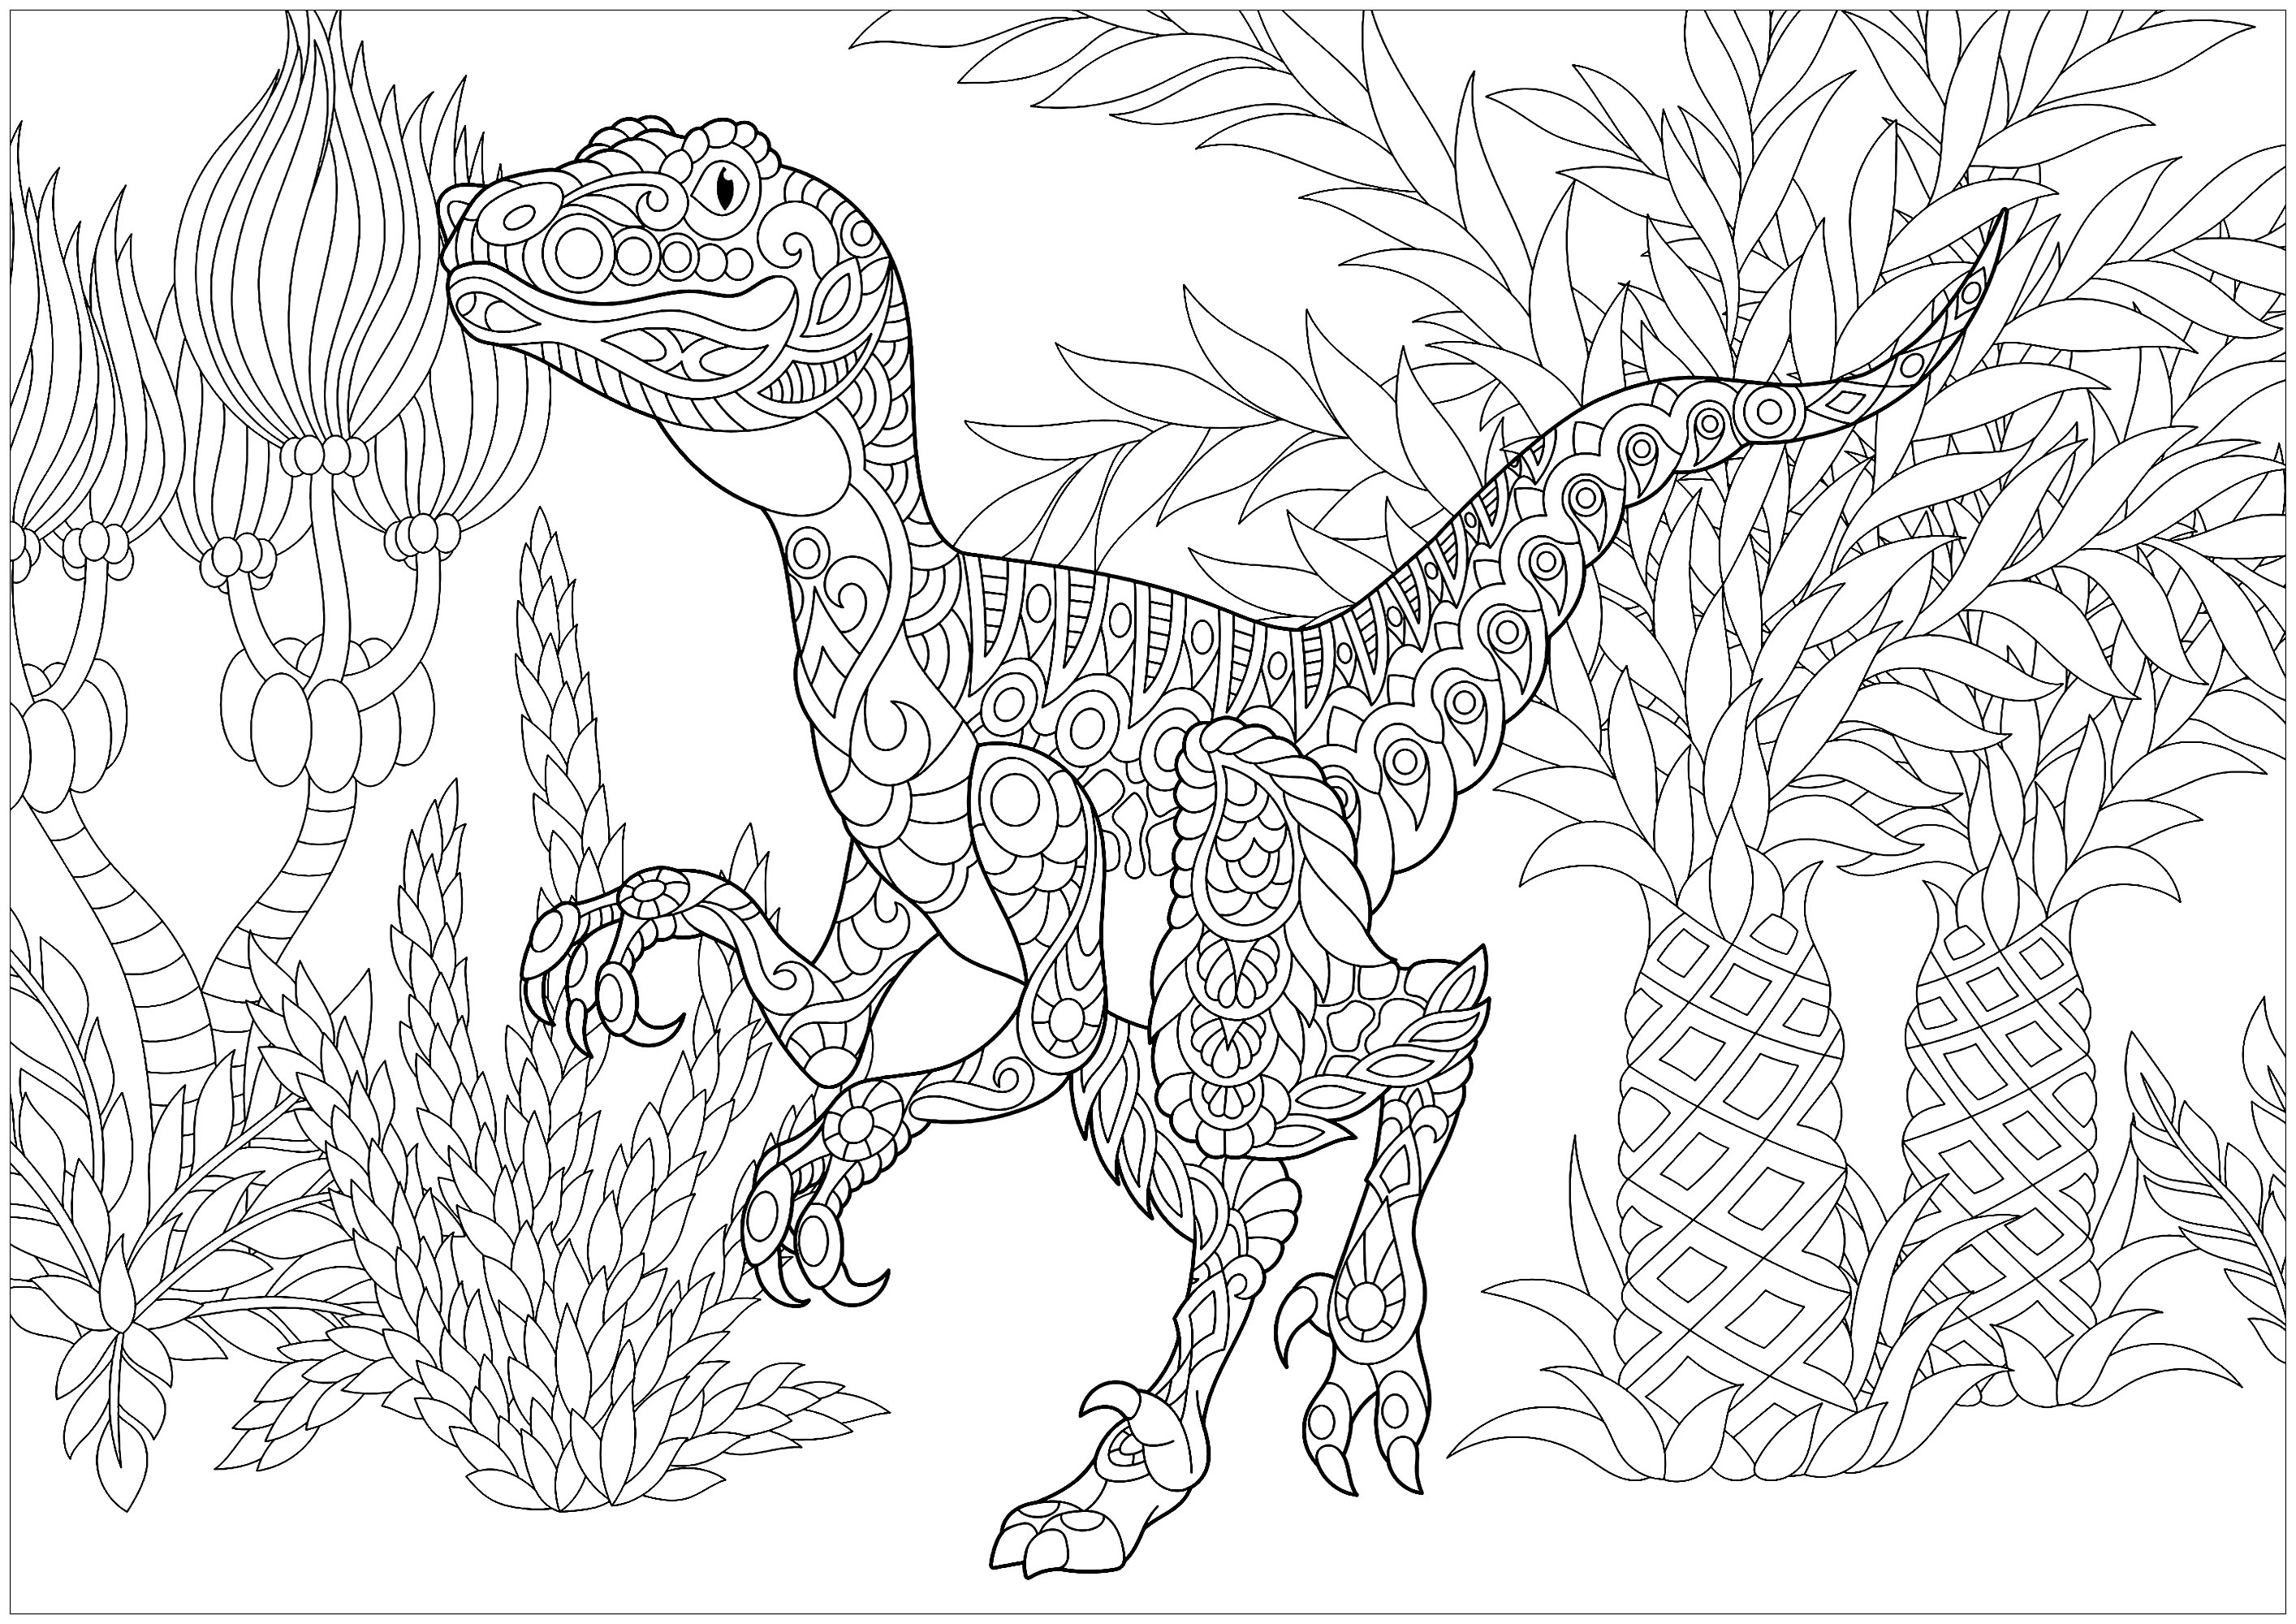 Velociraptor - Dinosaurs Adult Coloring Pages